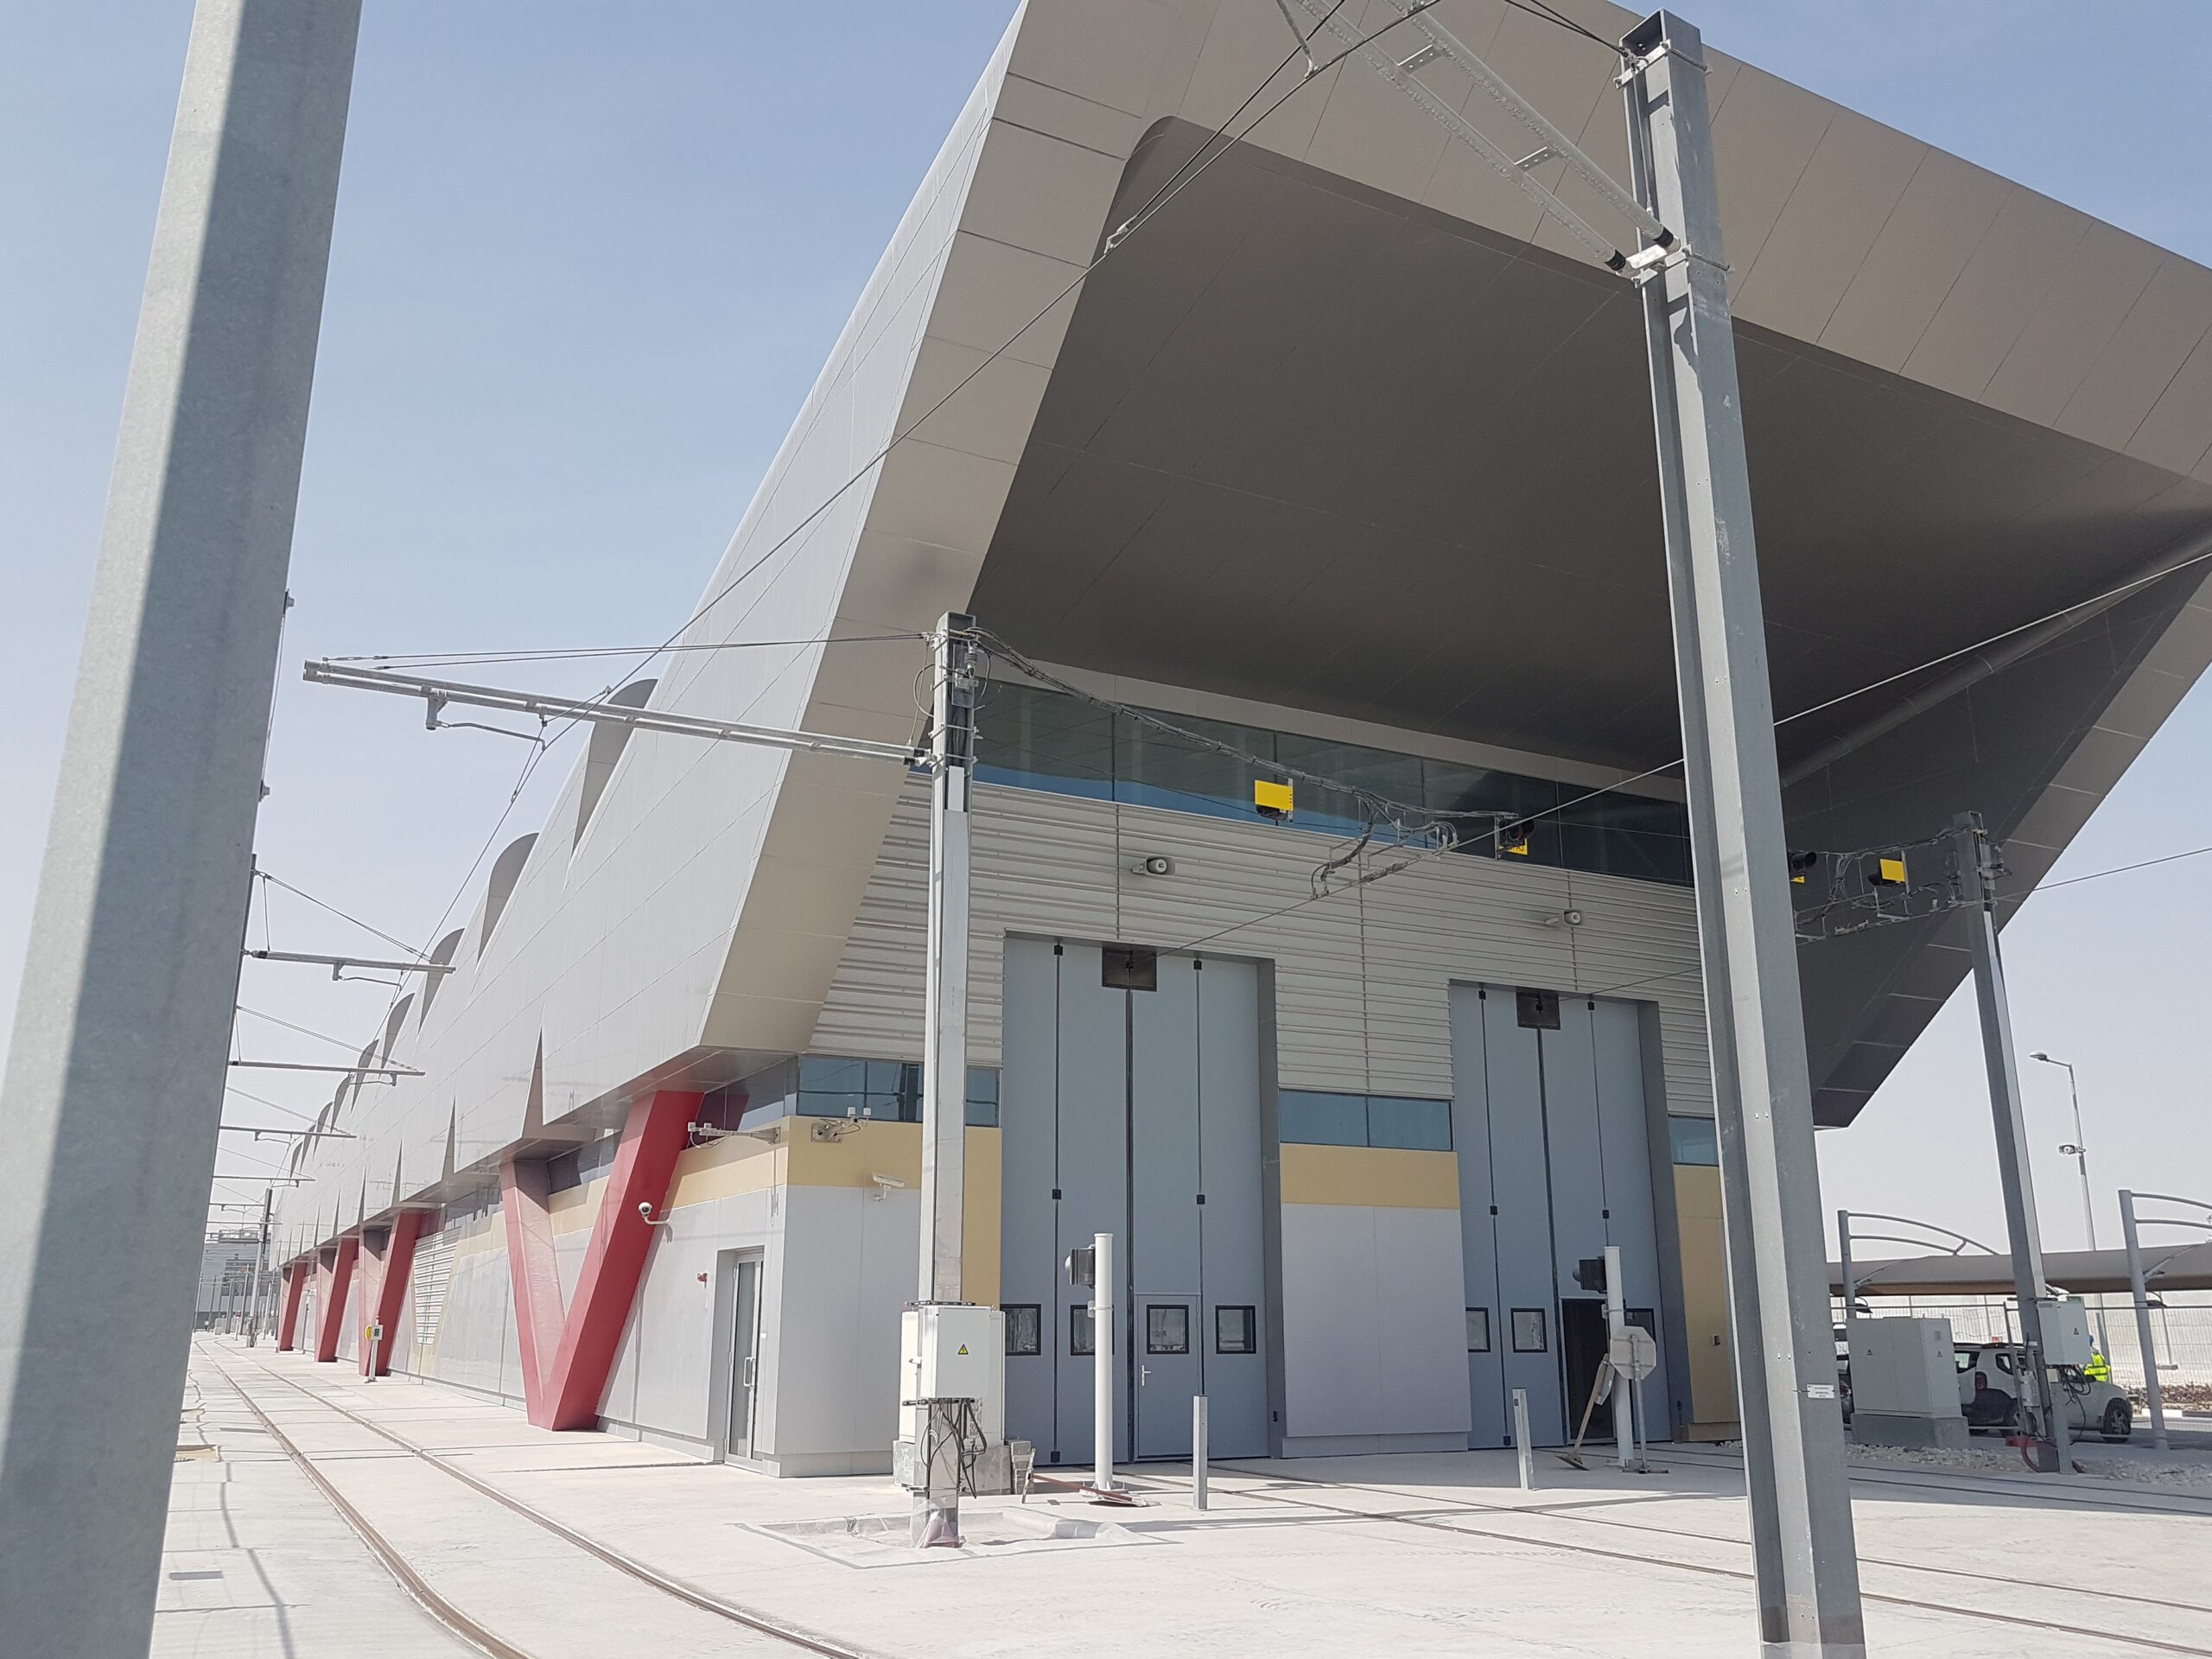 Lusail Light Rail in Qatar – 30 sets of Swift-SEW doors on 3 depot buildings for this project in 2018